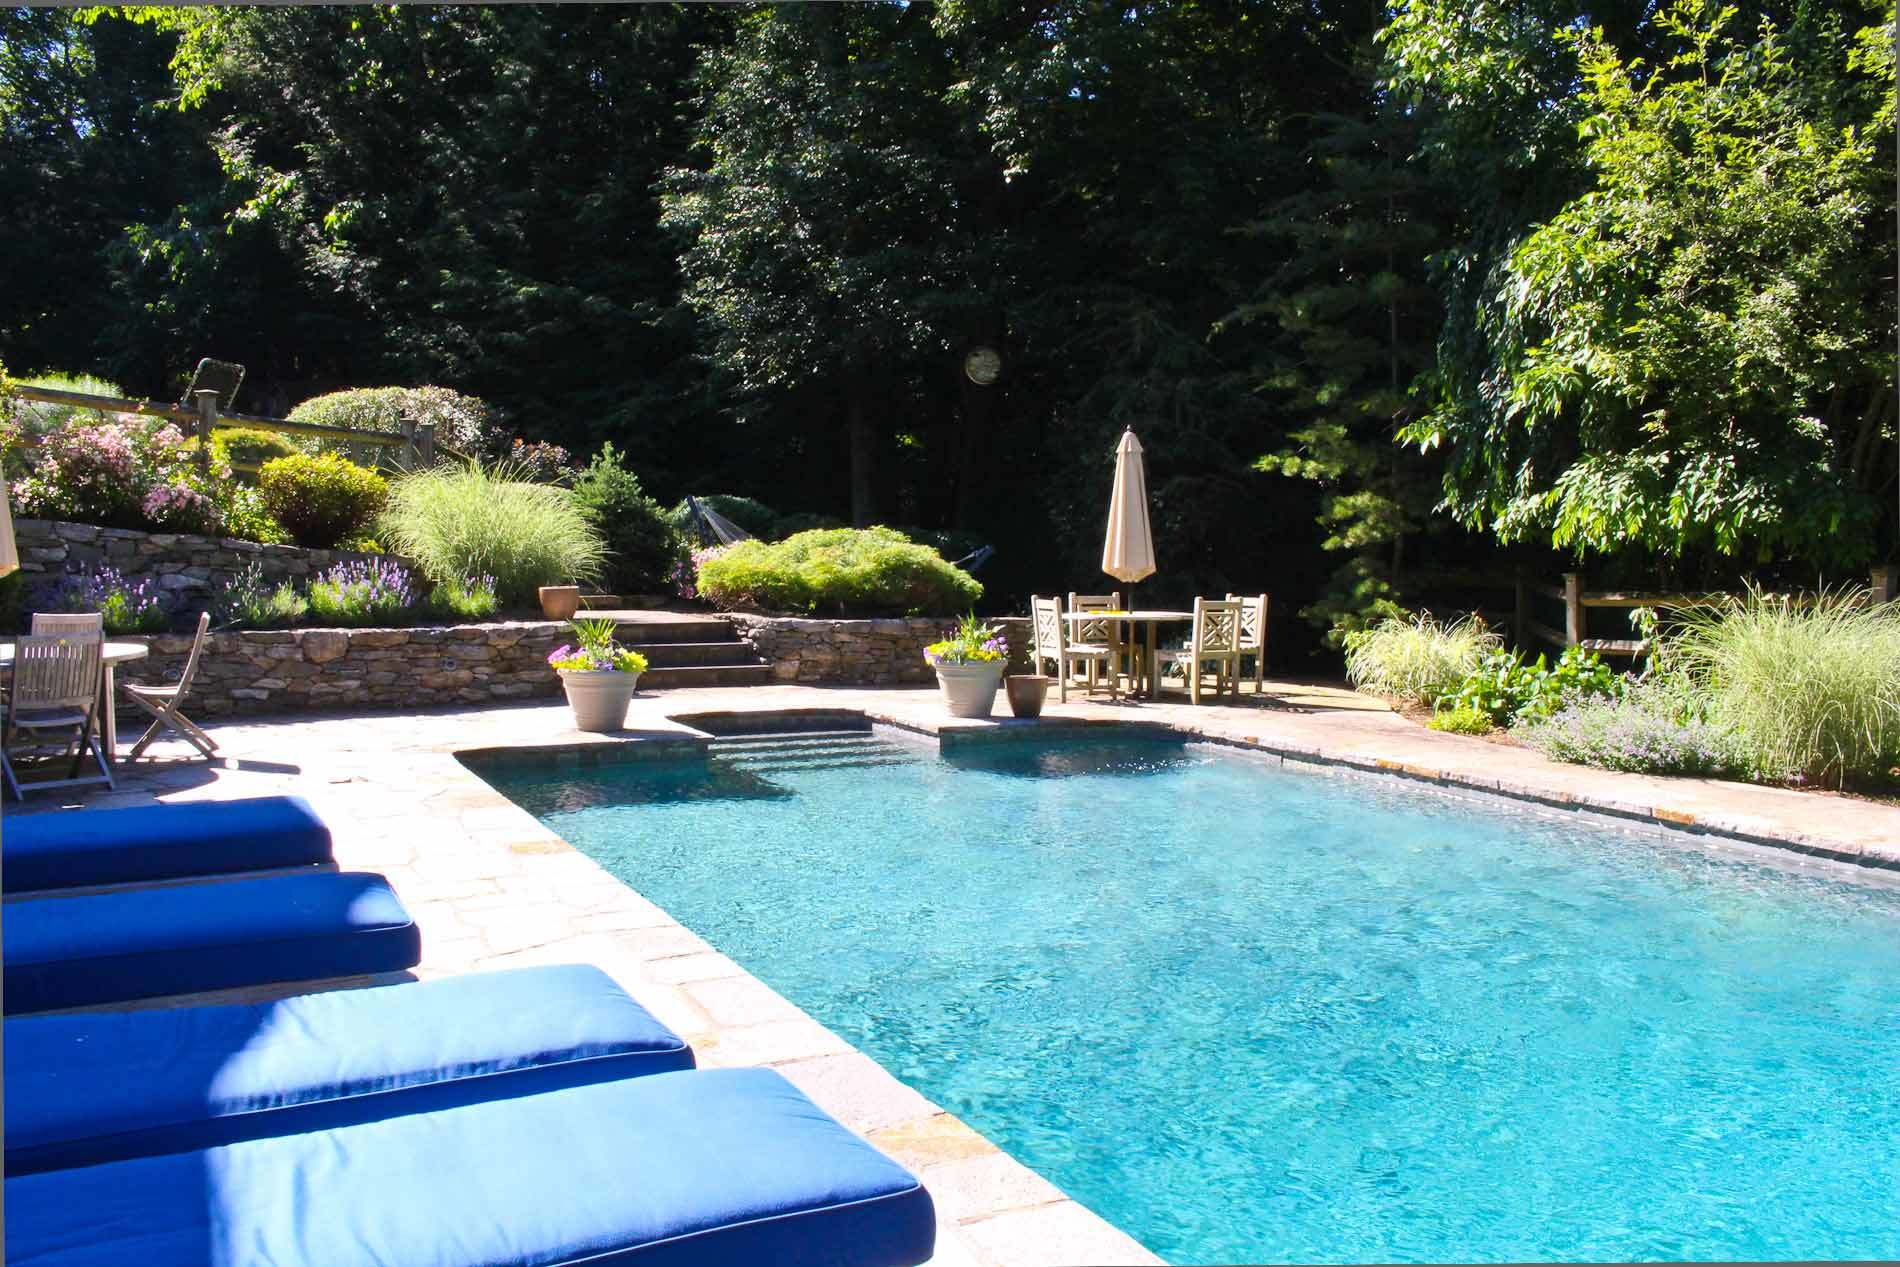 Homes with swimming pool for sale in fairfield ct find for Buy swimming pool